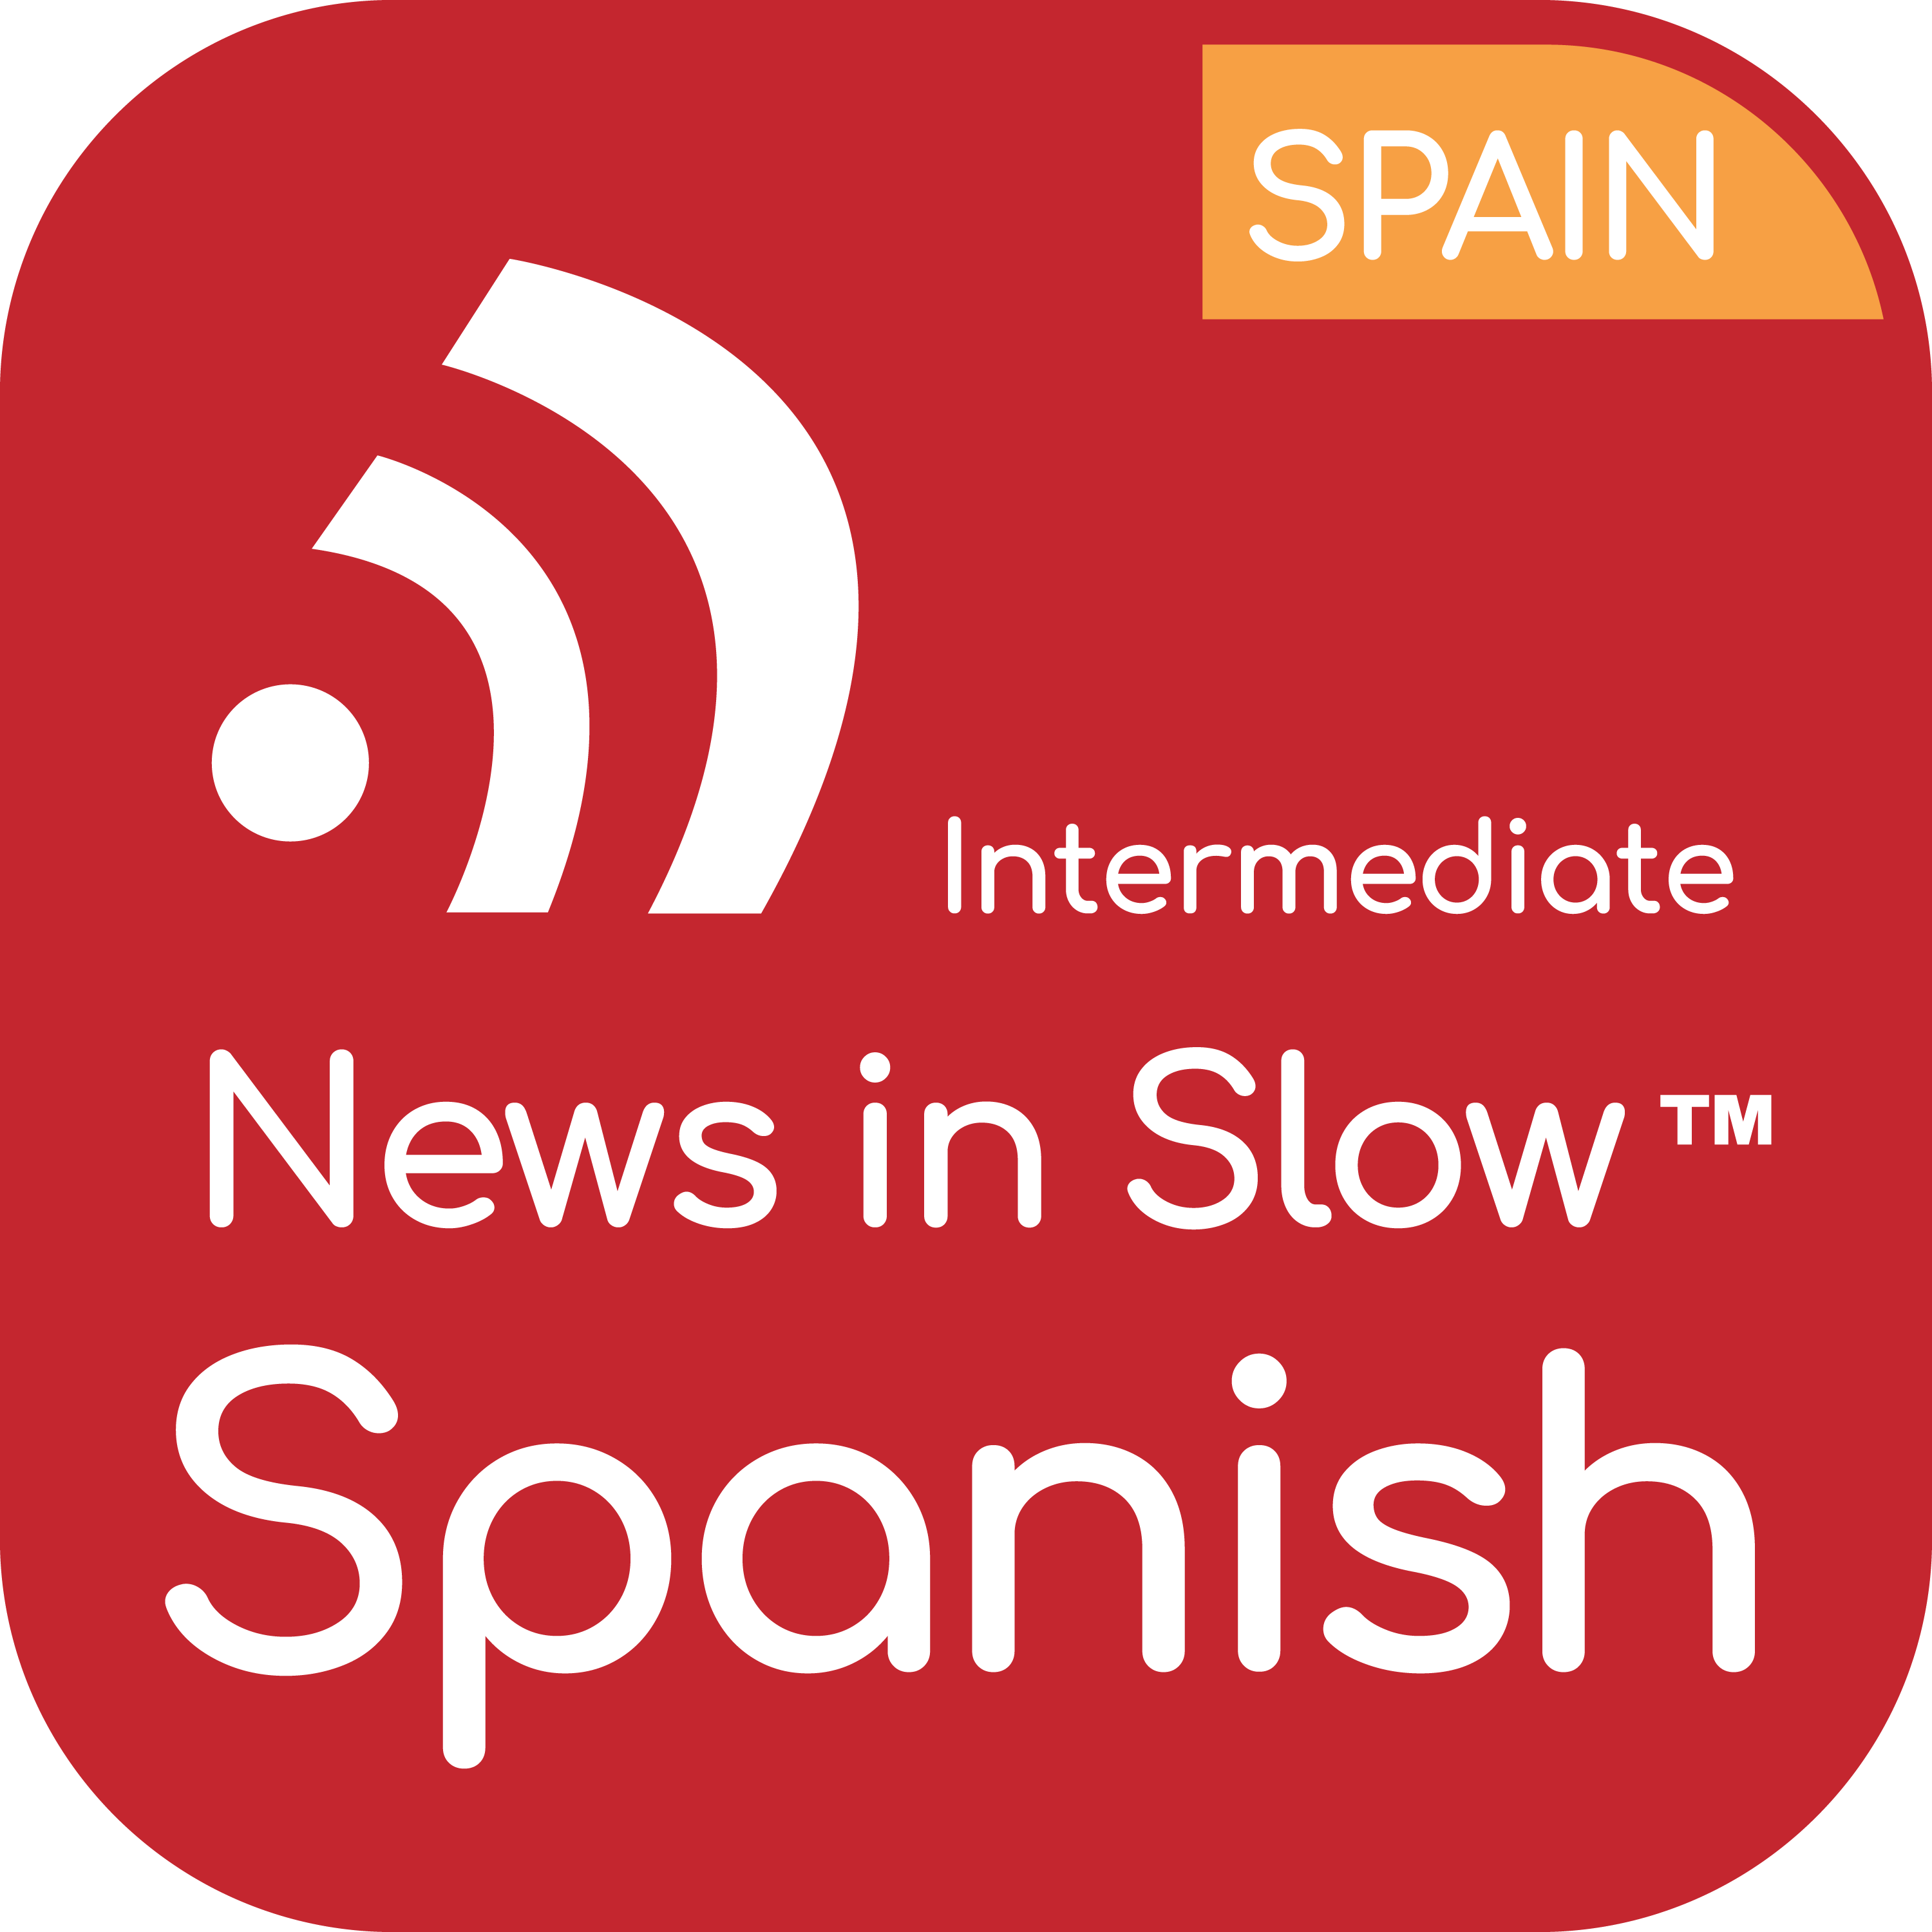 News in Slow Spanish - #607 - Spanish Expressions, News and Grammar